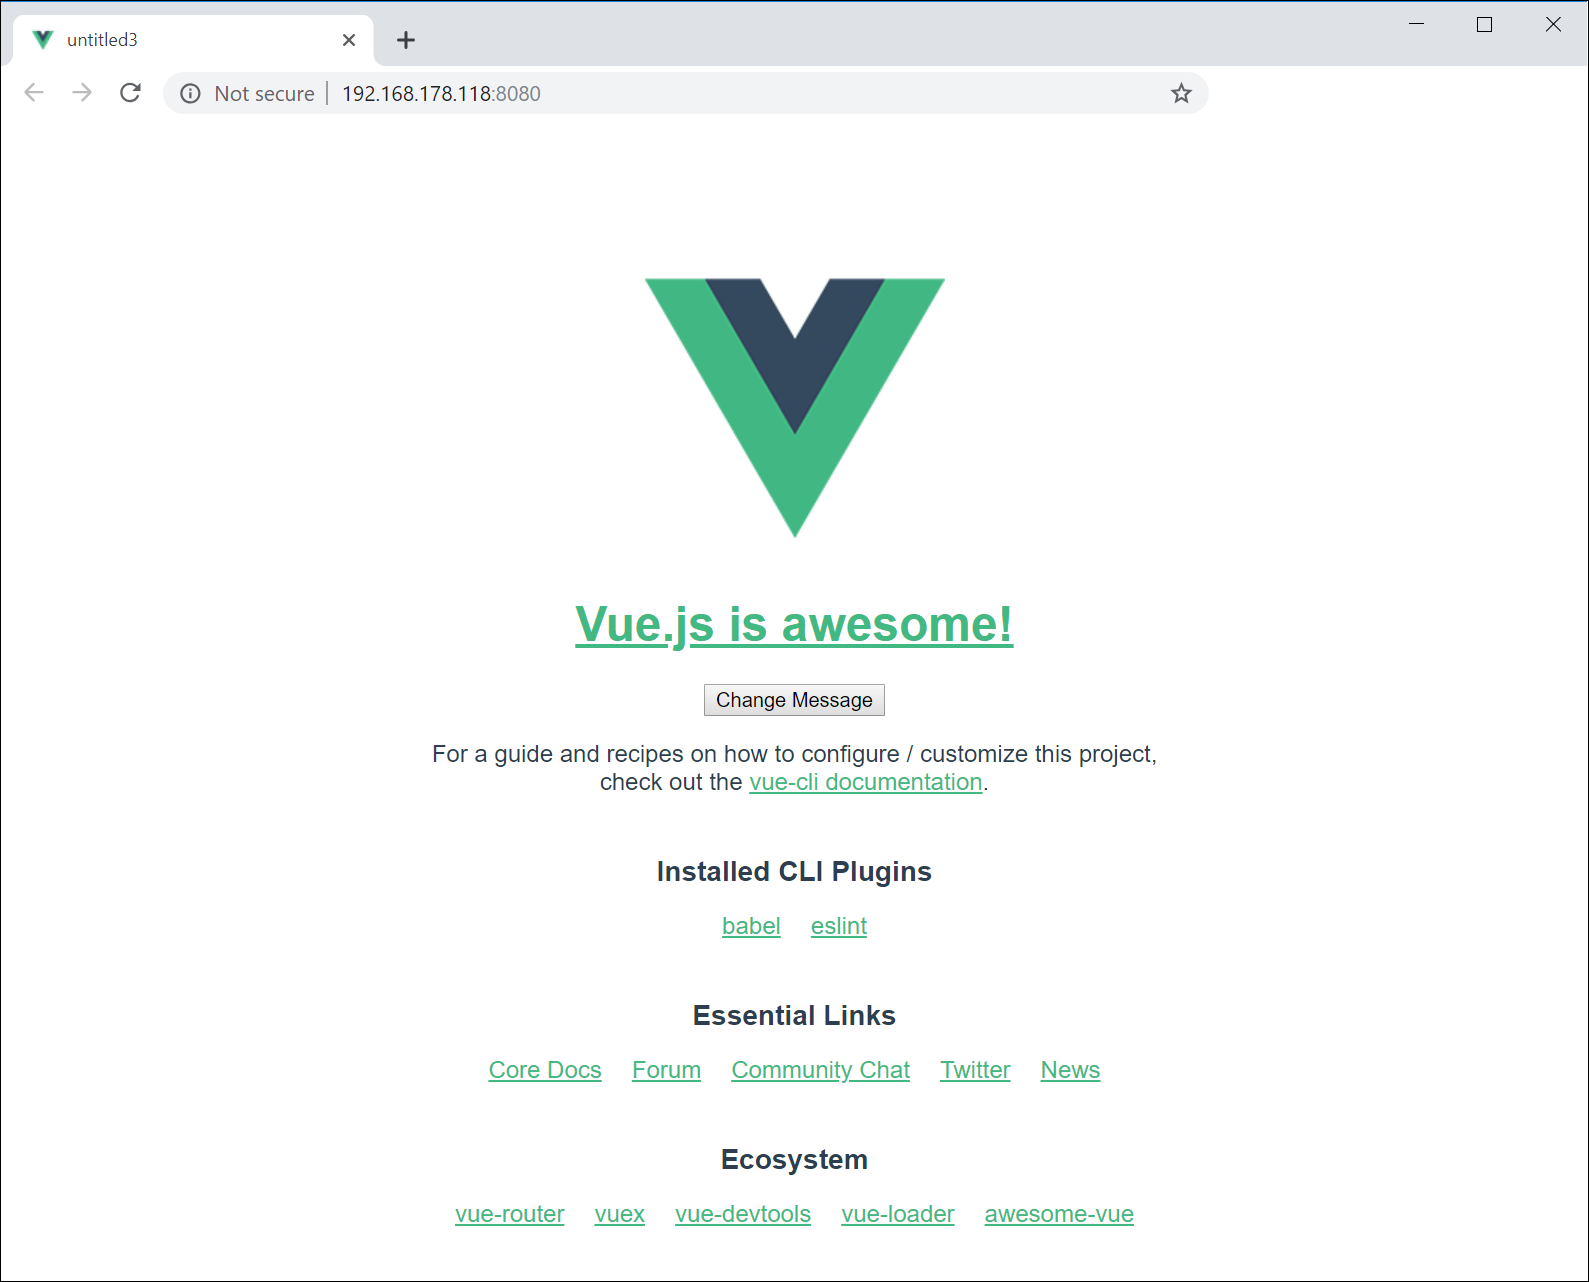 vue-browser-final-launched